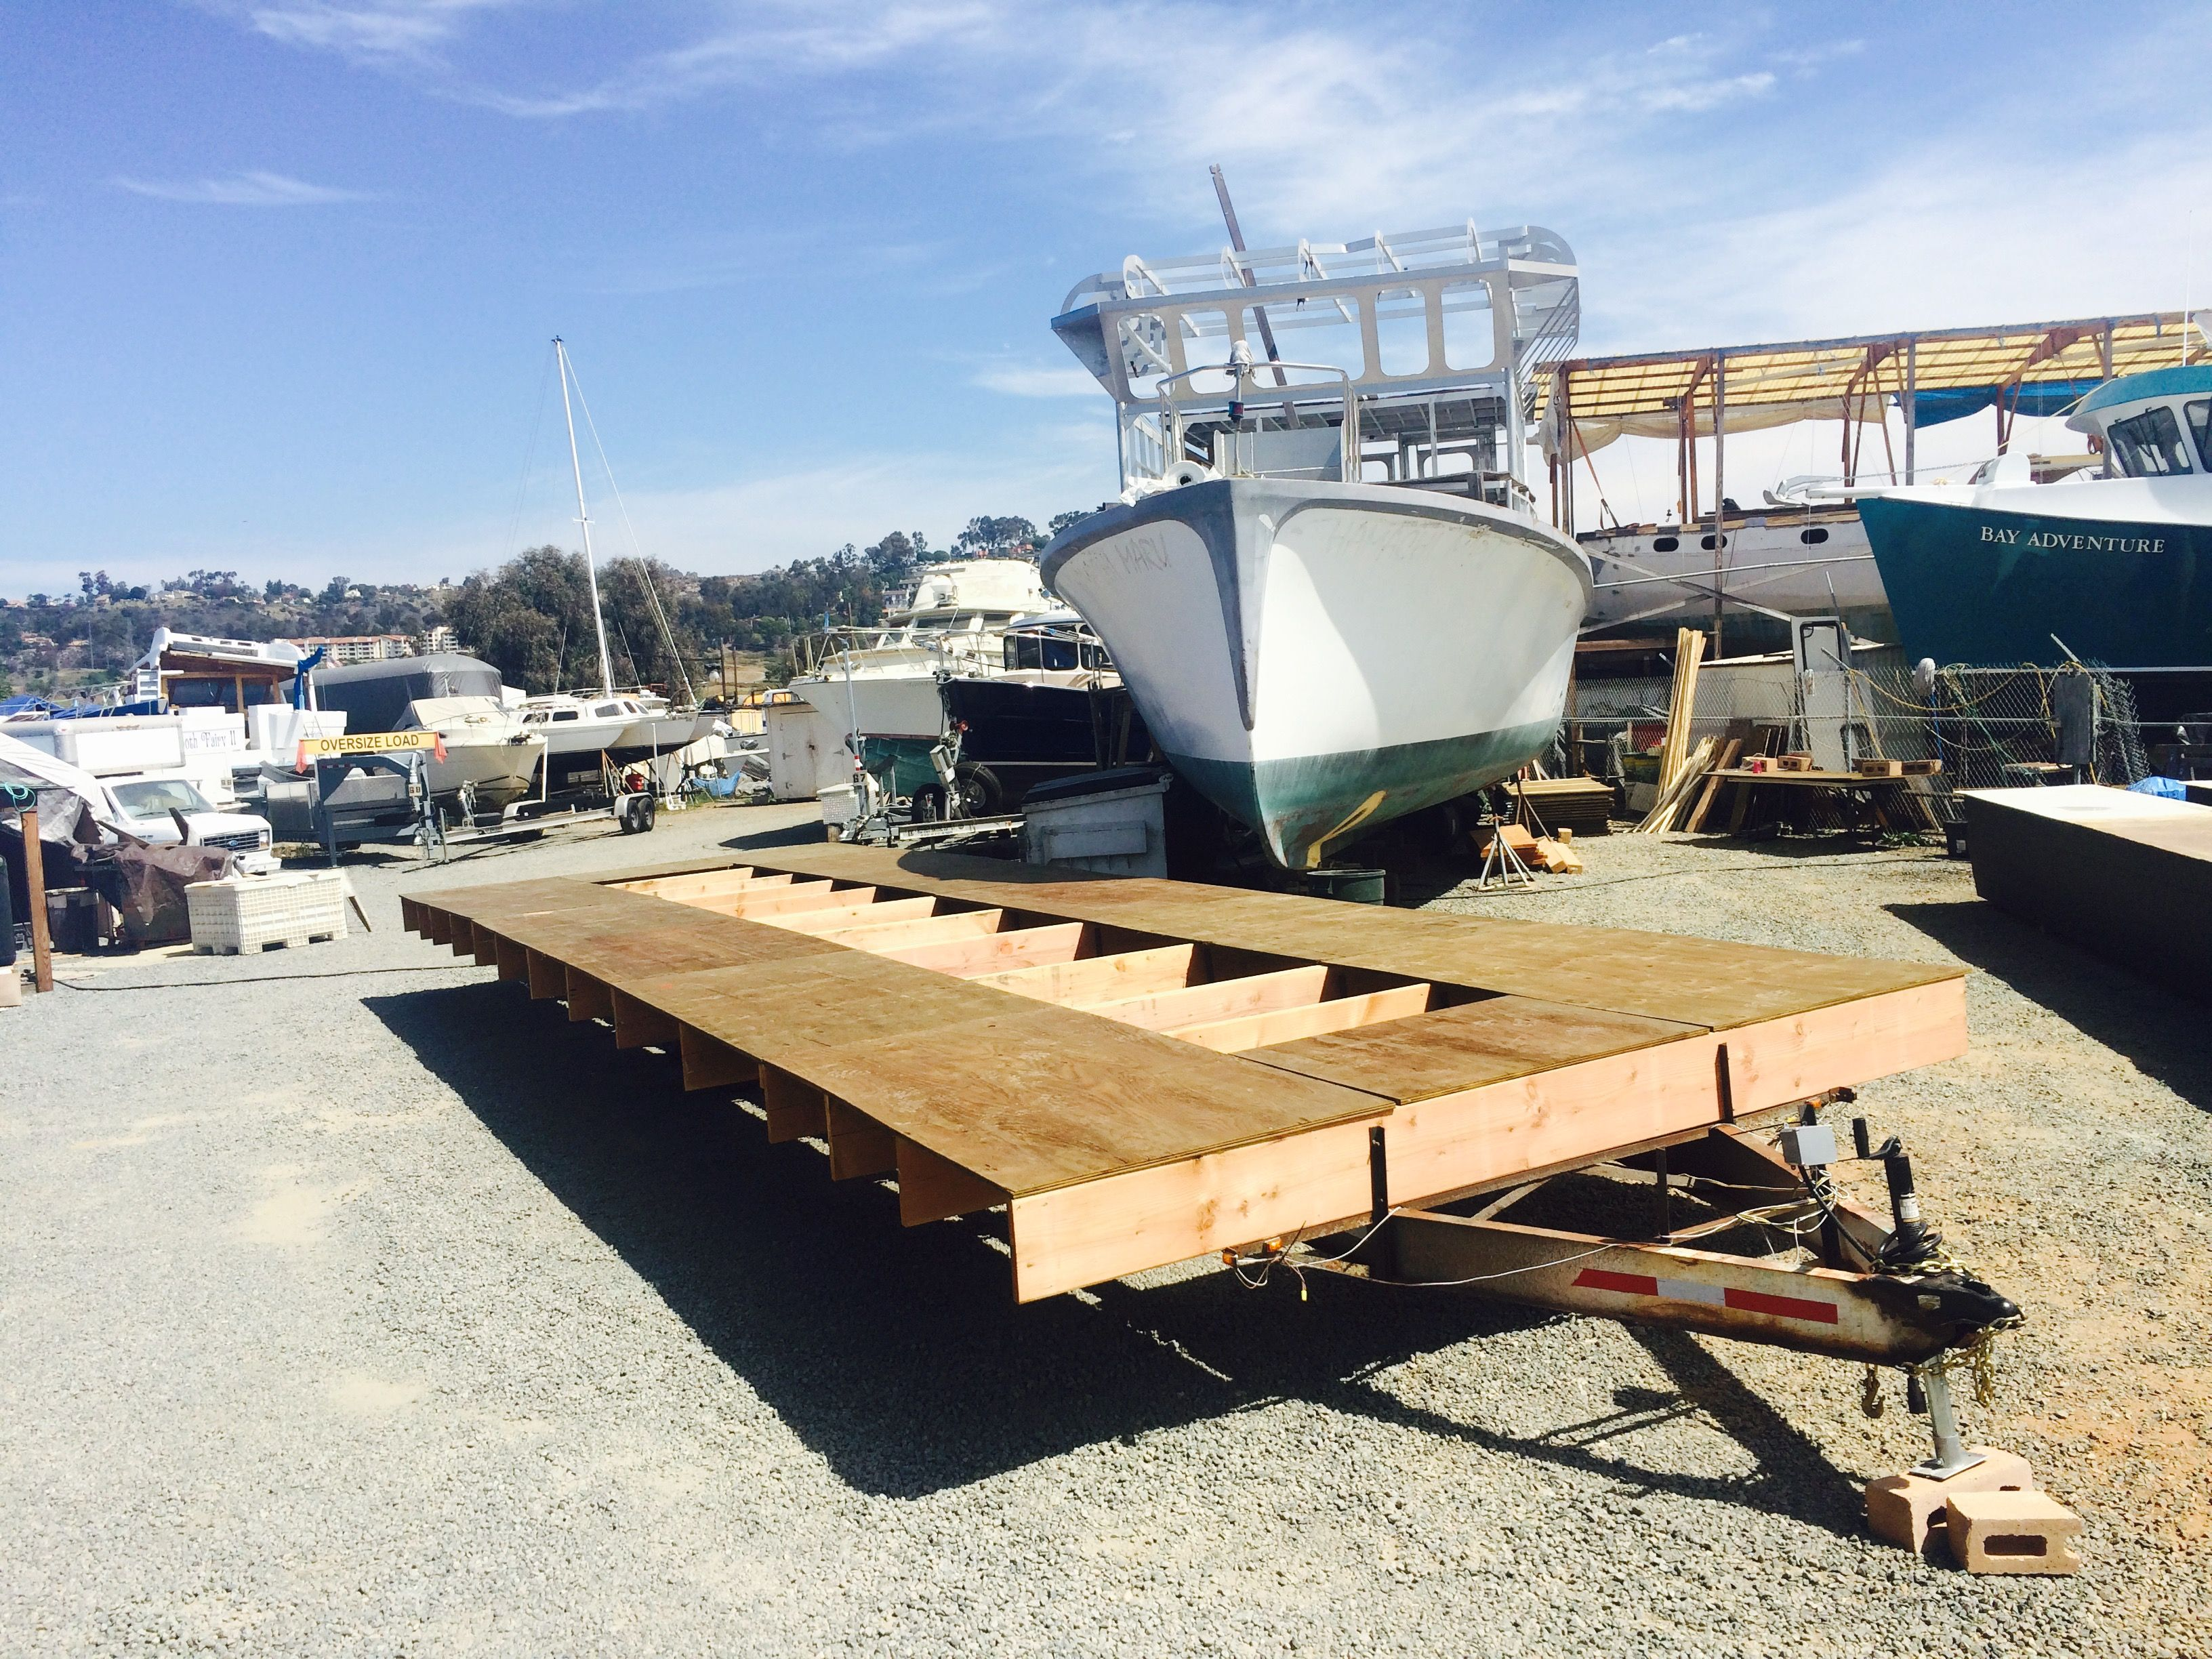 Trailer Complete Www Sandiegopontoon Com San Diego Pontoon Boat Rental Pontoon Boat Boat Rental Pontoon